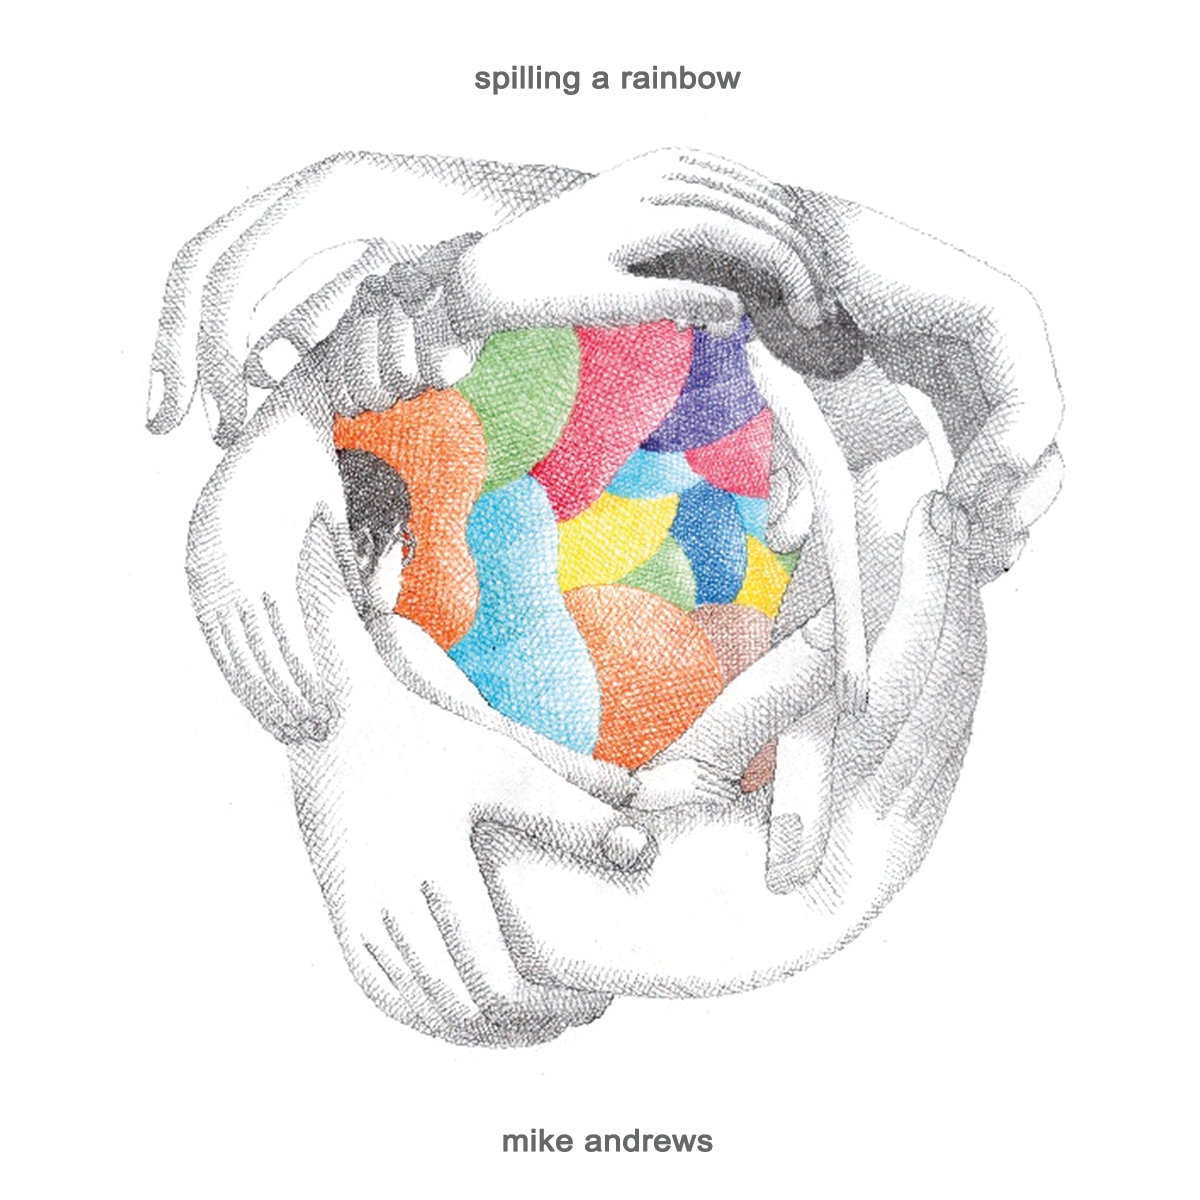 Mike Andrews - Eng, Mix